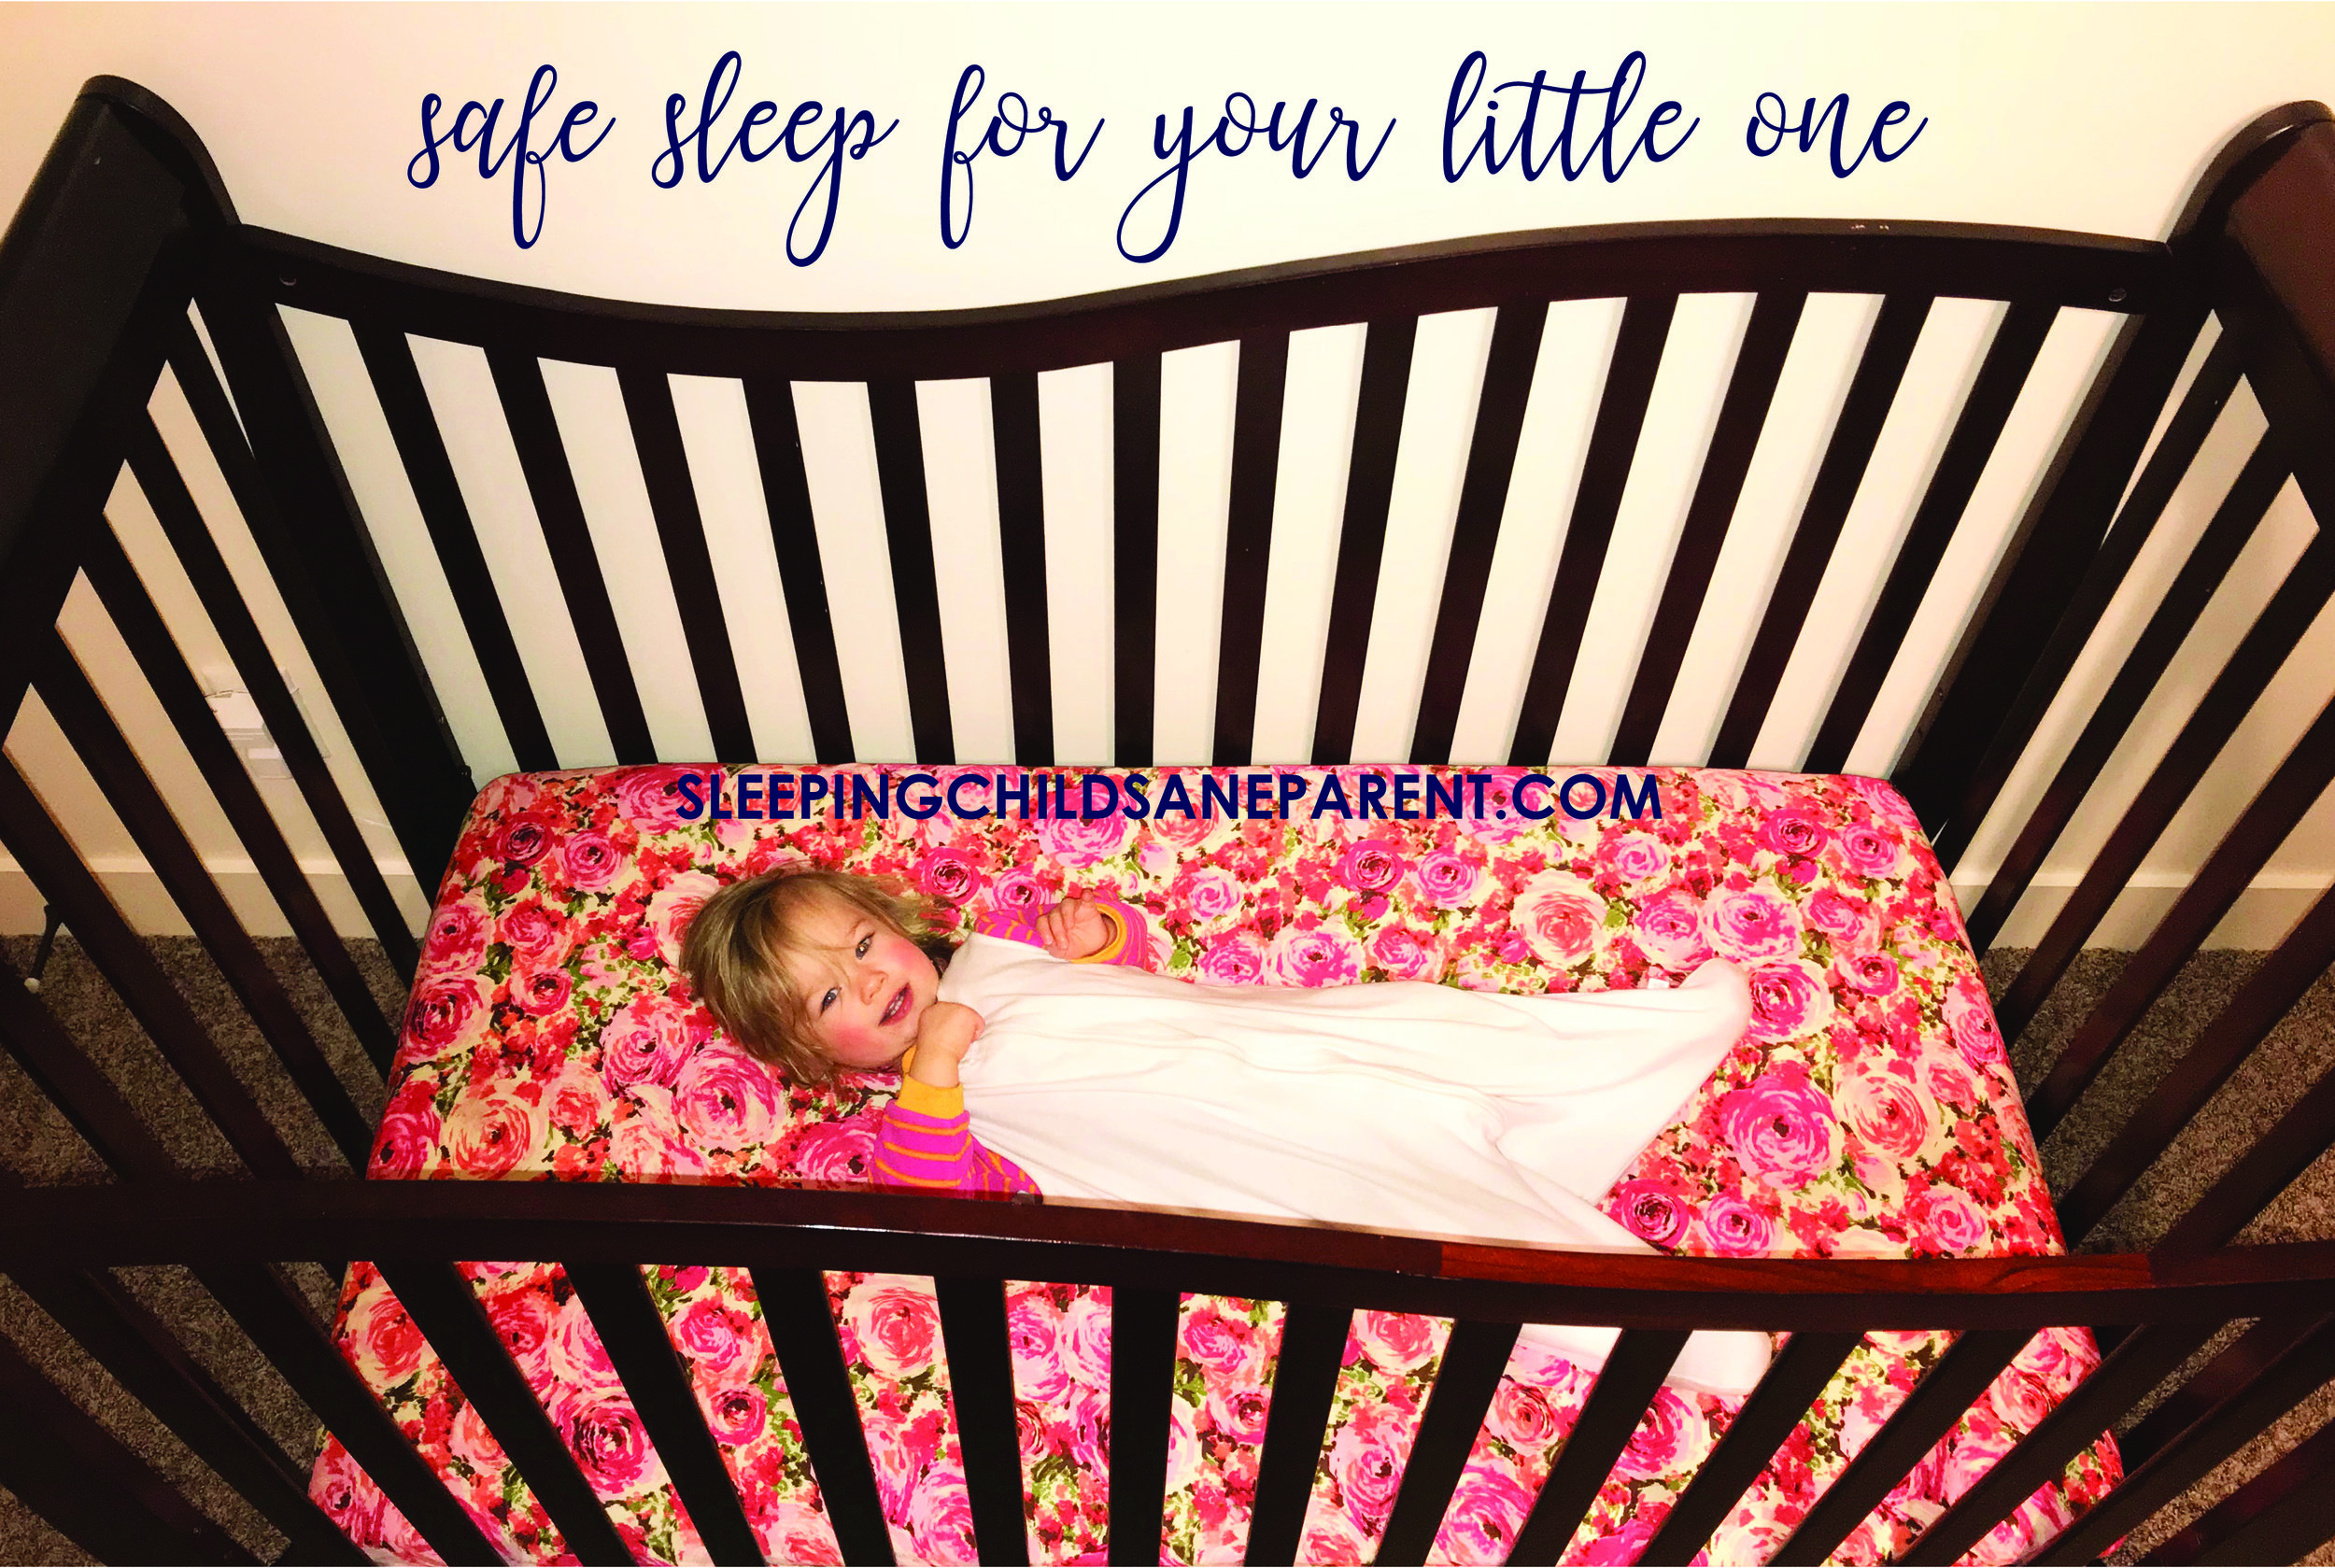 Cute crib decor is fun, but the top priority for your baby should be a safe crib environment. Is your child sleeping in a safe environment?